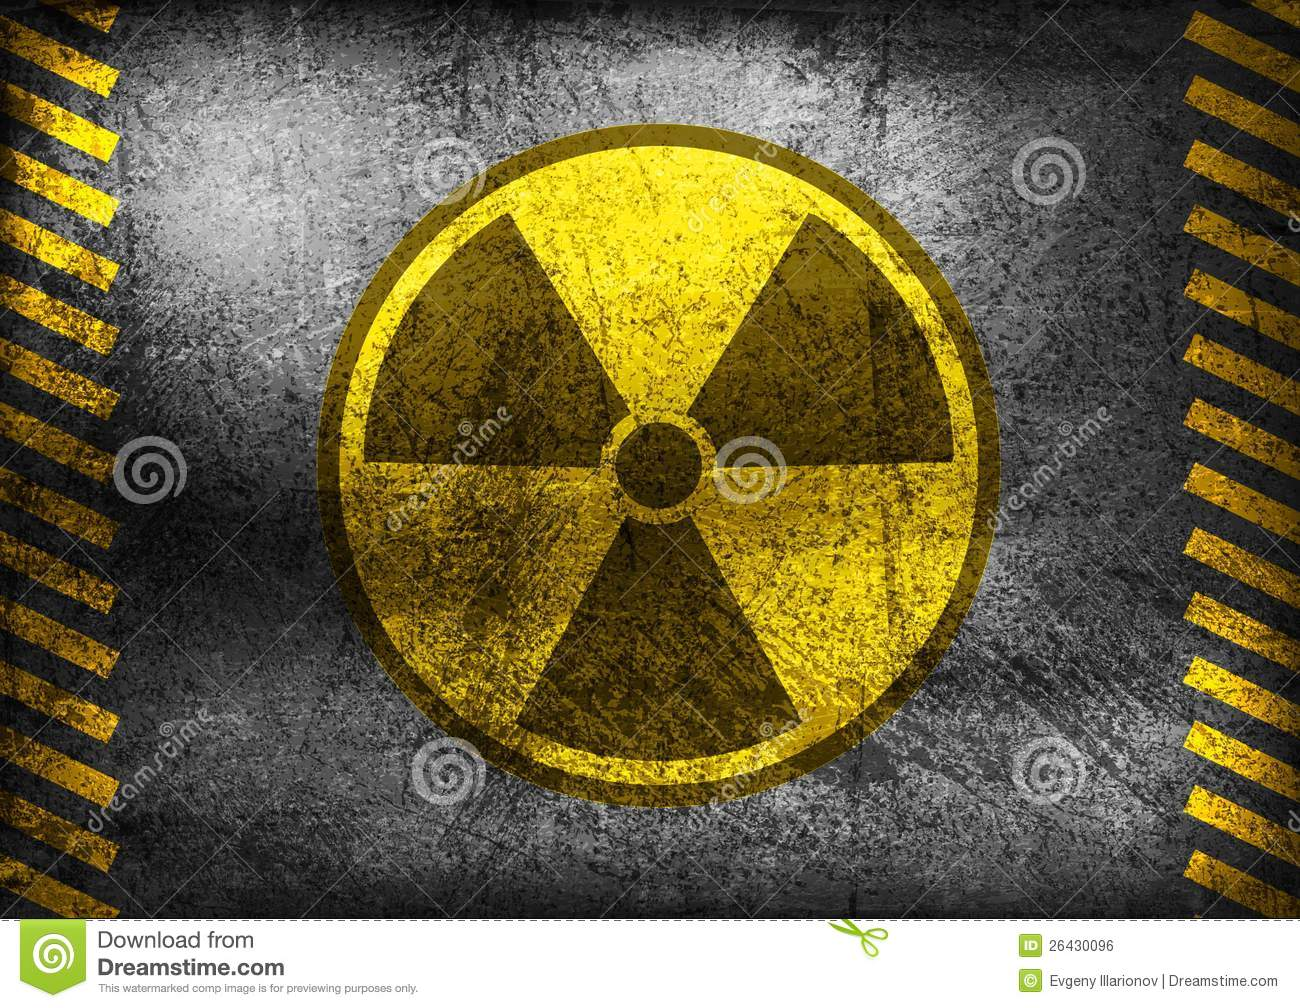 Danger 3d Wallpaper Grunge Nuclear Radiation Symbol Royalty Free Stock Image